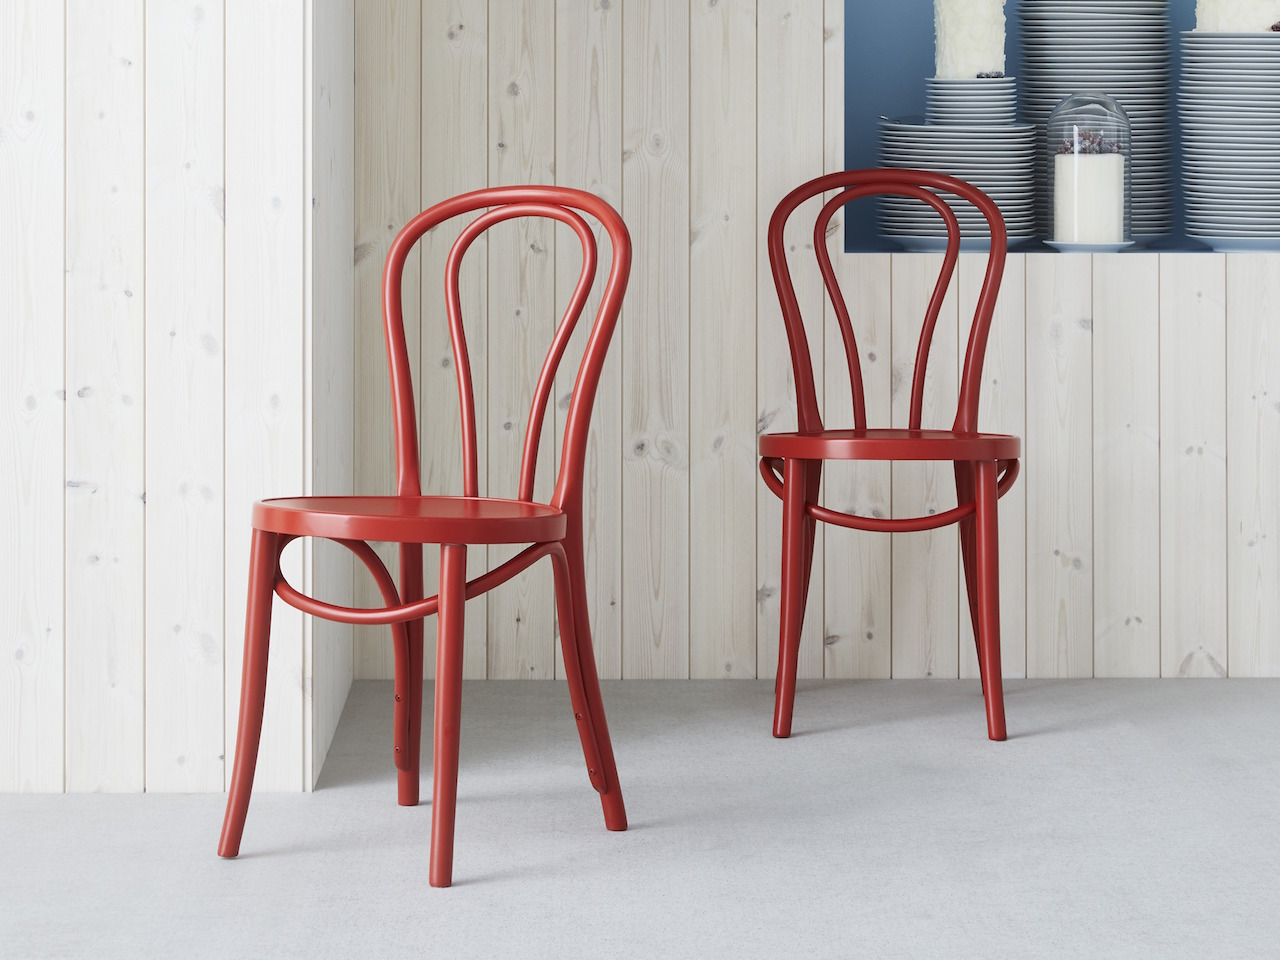 Entryway front hall decor ideas-two red IKEA chairs